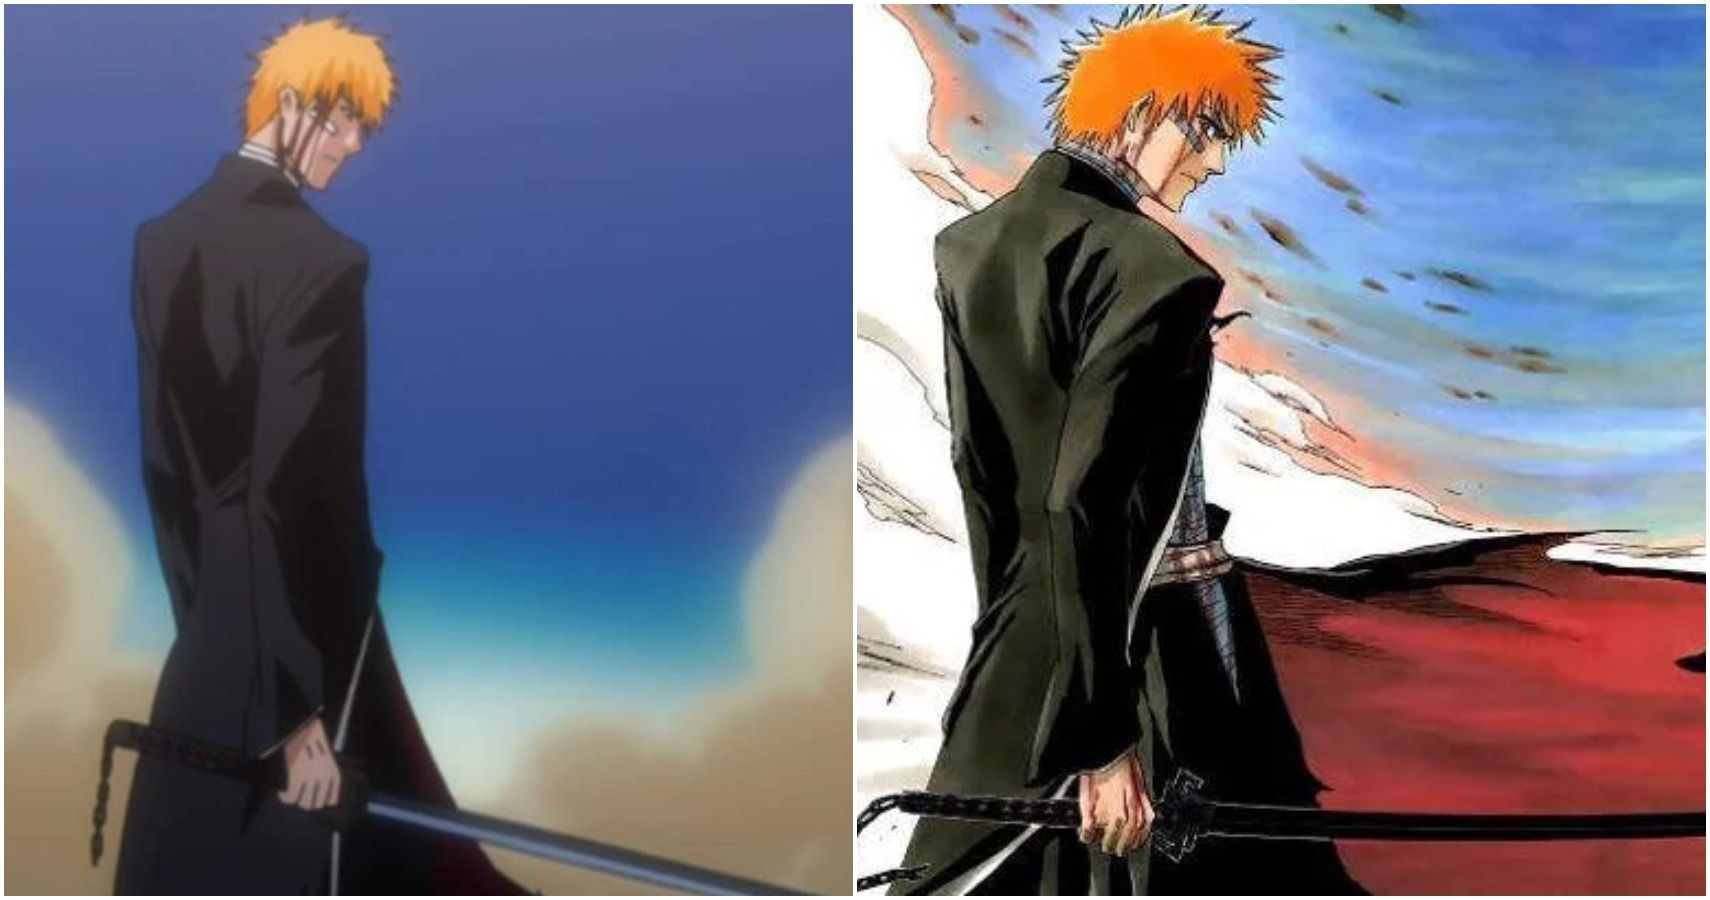 Bleach: 10 Differences Between The Anime And The Manga | CBR